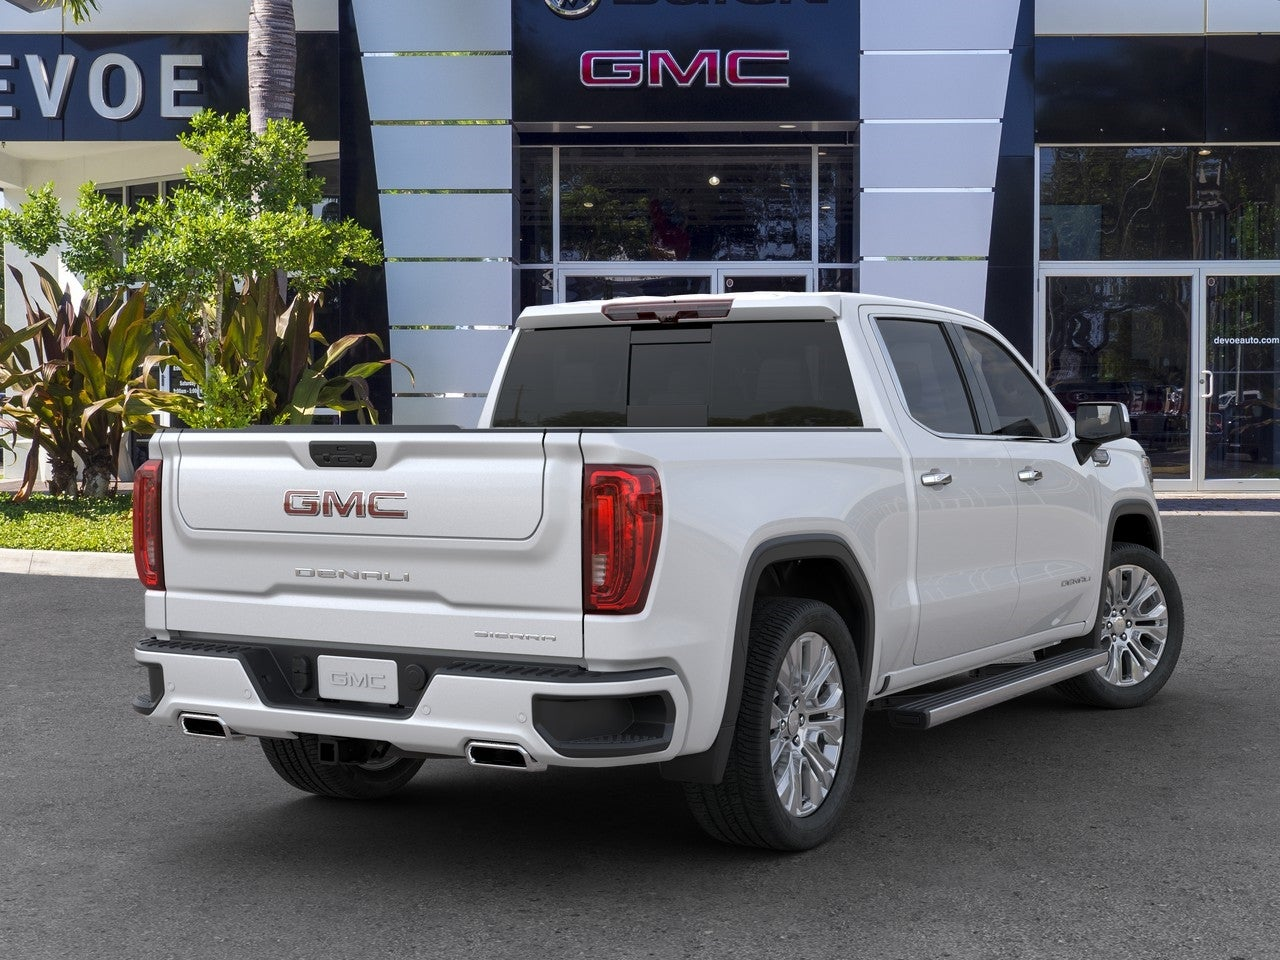 2020 GMC Sierra 1500 Crew Cab 4x4, Pickup #T20433 - photo 2